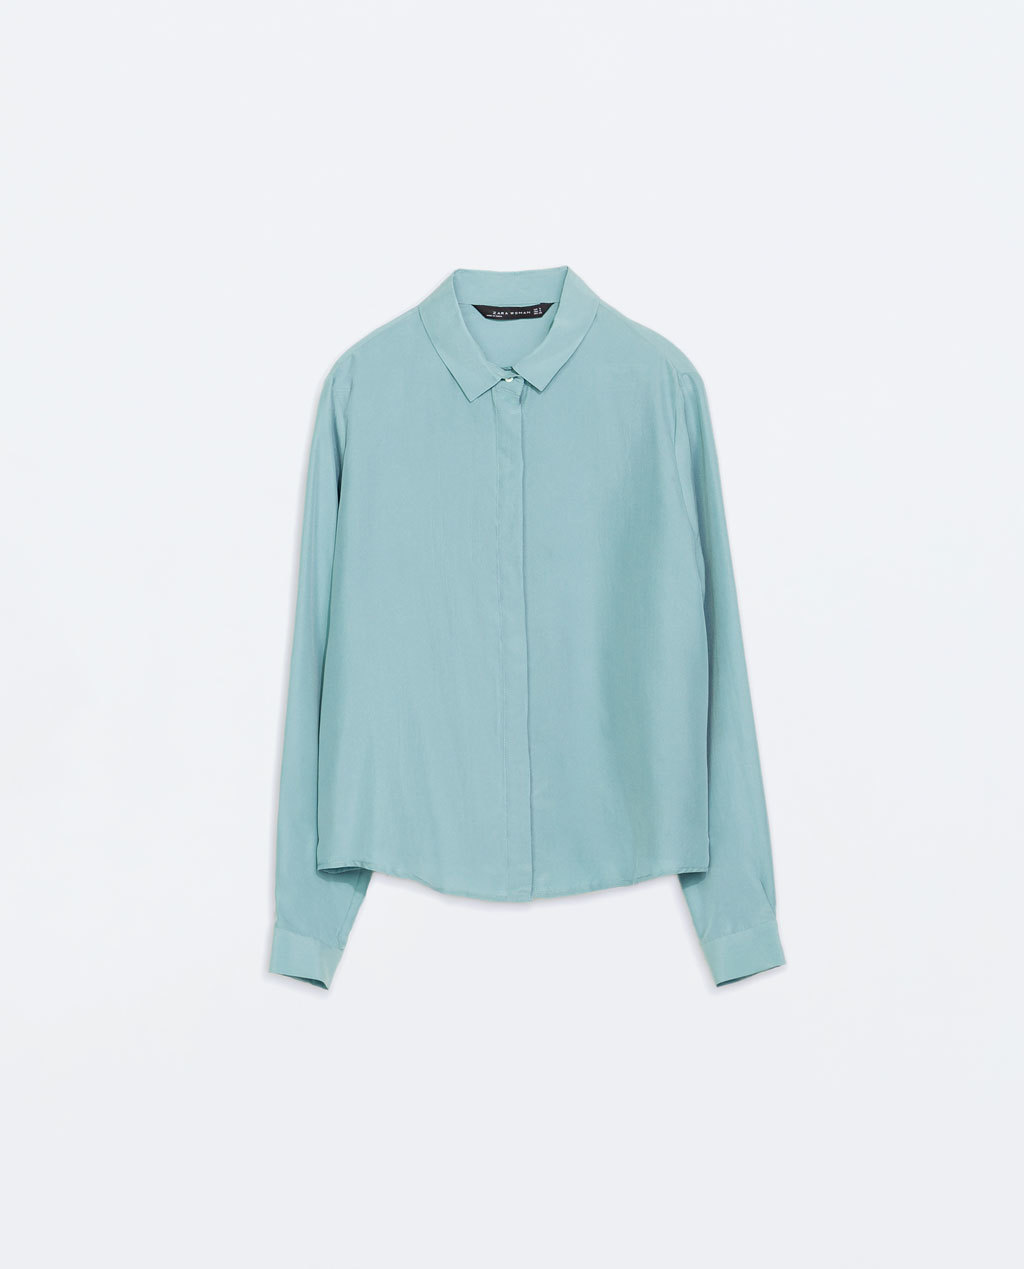 Silk Blousen With Shirt Collar - neckline: shirt collar/peter pan/zip with opening; pattern: plain; style: shirt; predominant colour: pale blue; occasions: casual, work, creative work; length: standard; fibres: silk - 100%; fit: straight cut; sleeve length: long sleeve; sleeve style: standard; texture group: silky - light; pattern type: fabric; season: a/w 2014